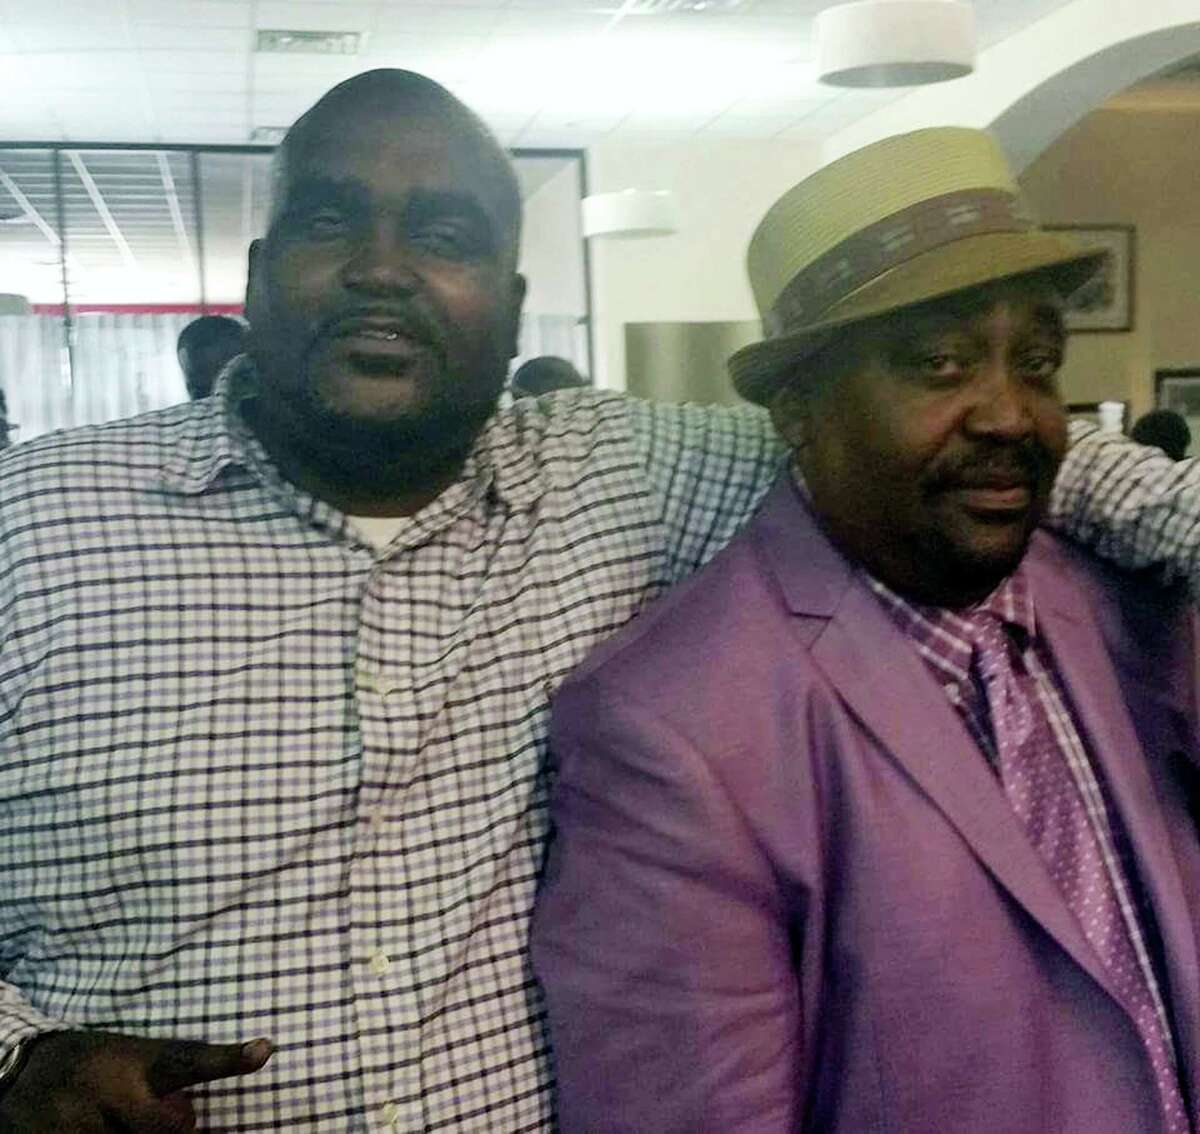 This undated photo provided by the Parks & Crump, LLC shows Terence Crutcher, left, with his father, Joey Crutcher. Crutcher, an unarmed black man, was killed by a white Oklahoma officer on Sept. 16, 2016 who was responding to a stalled vehicle.